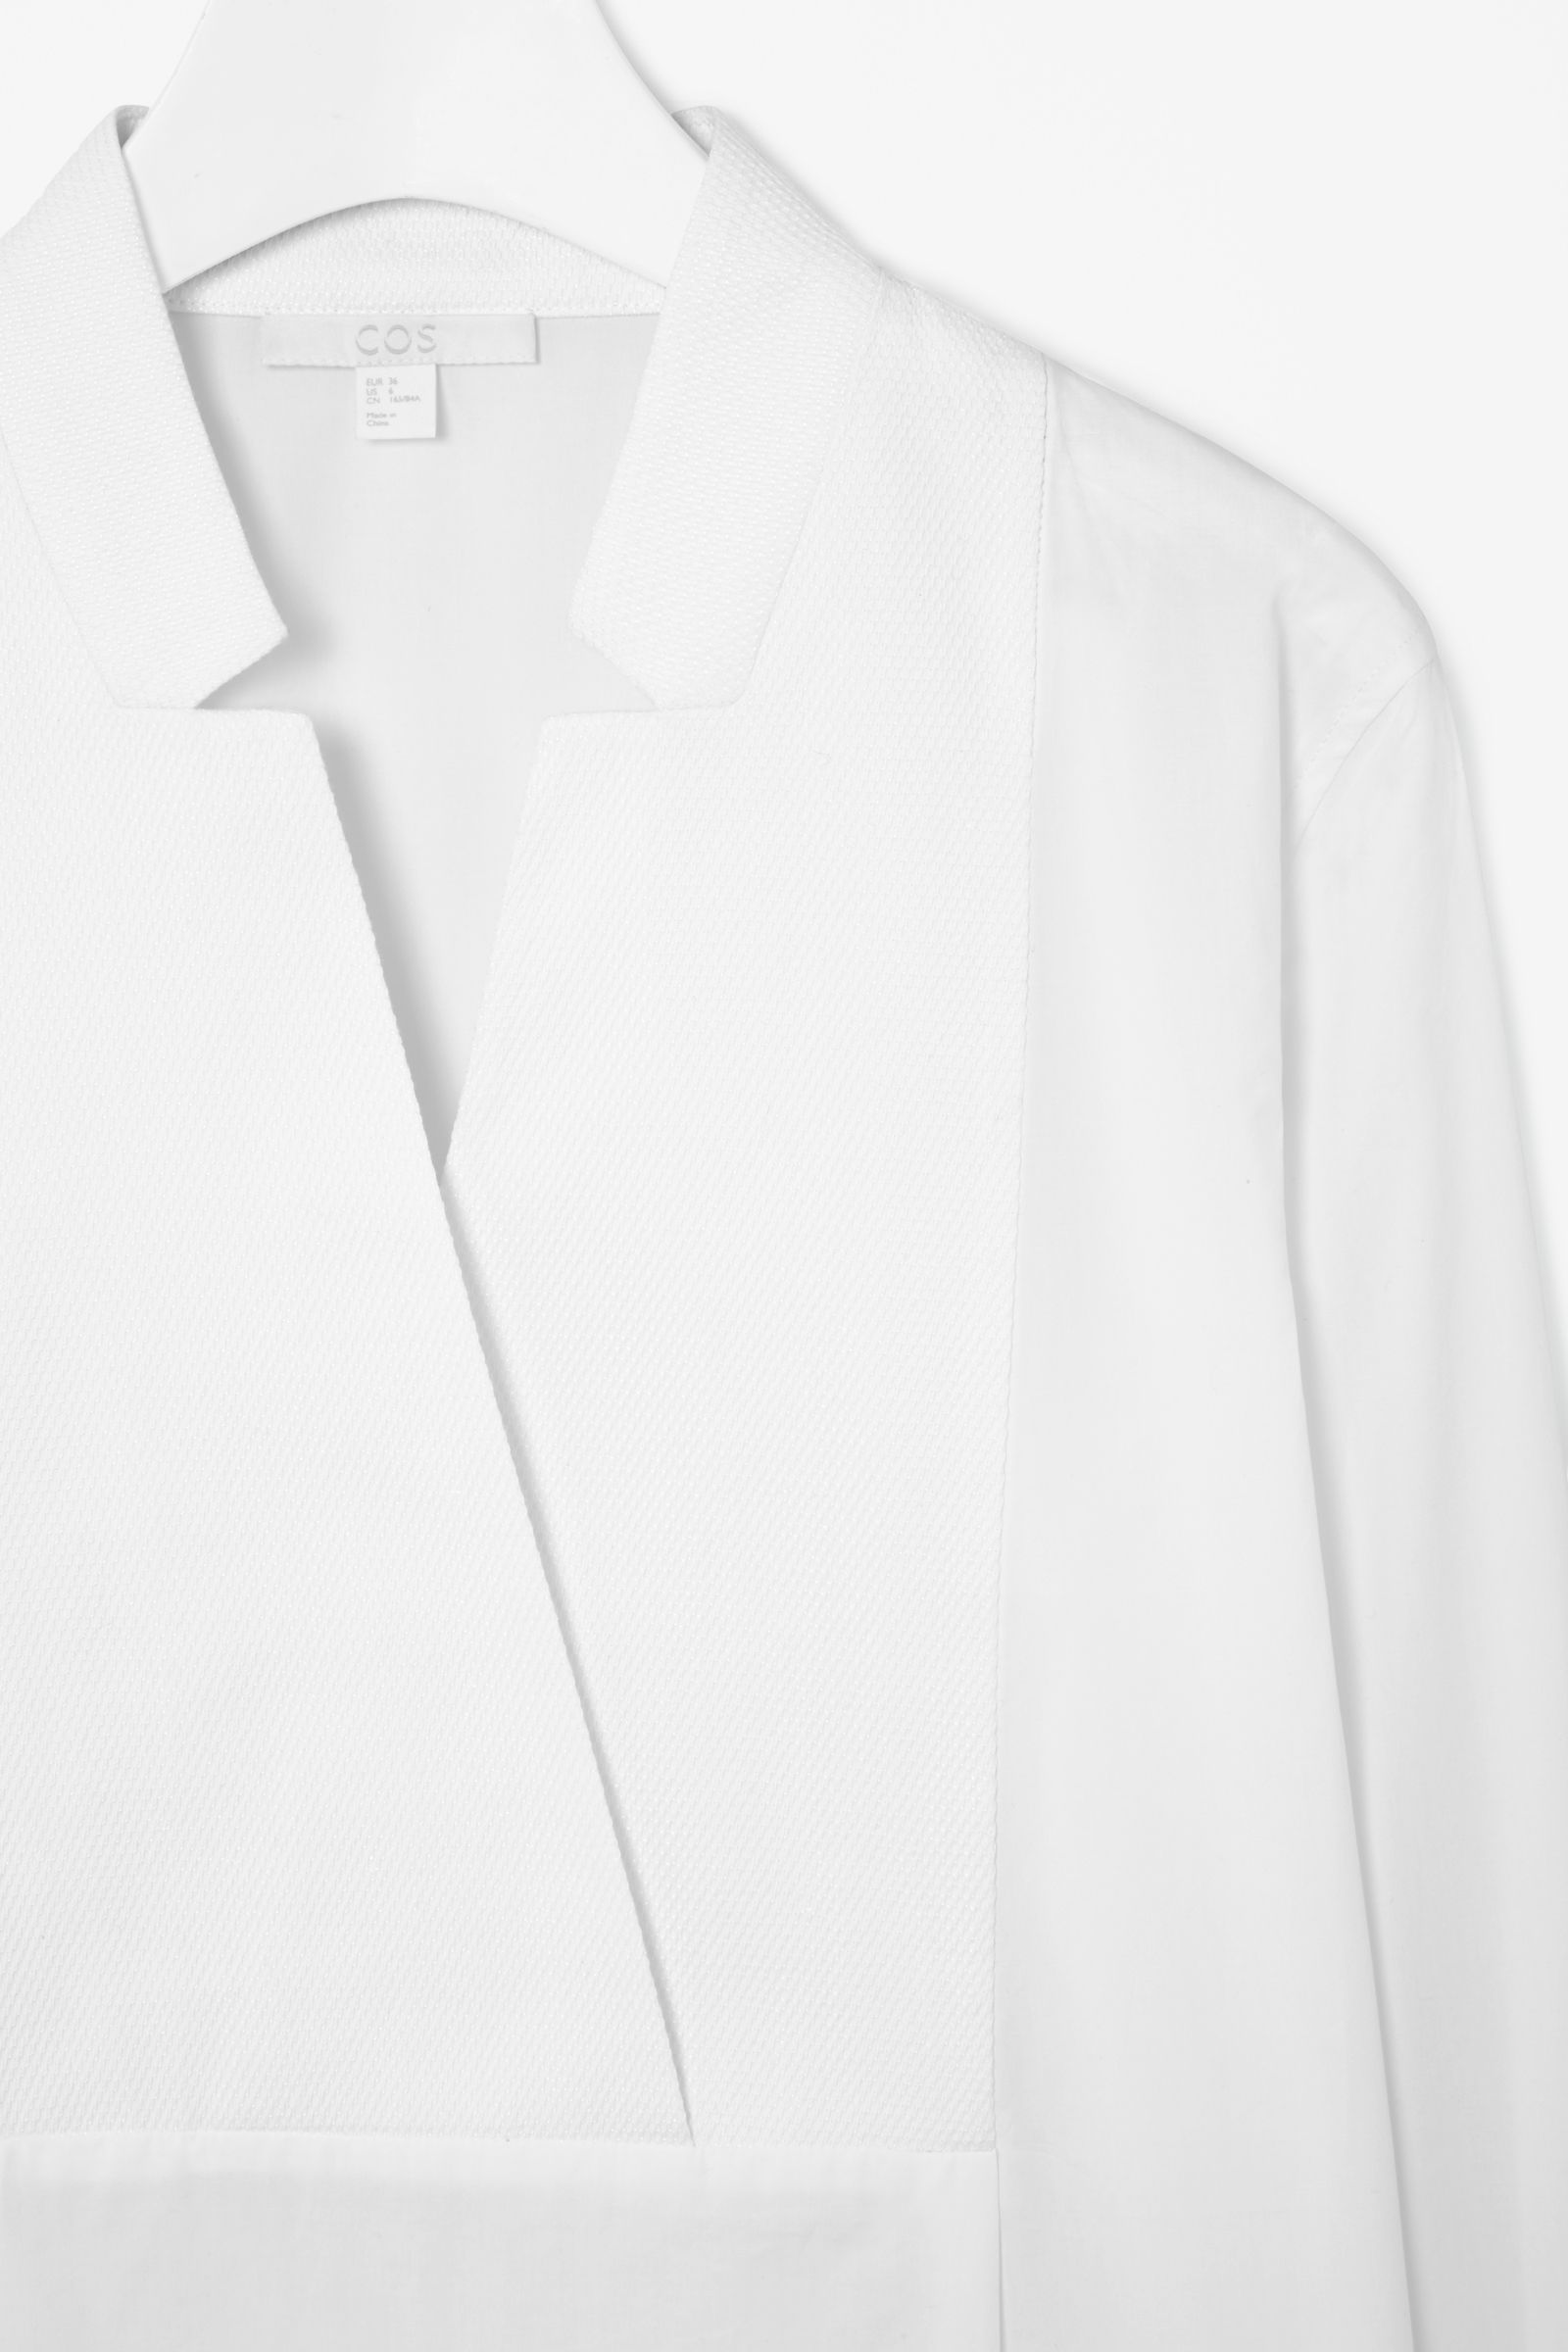 Cut-out collar shirt